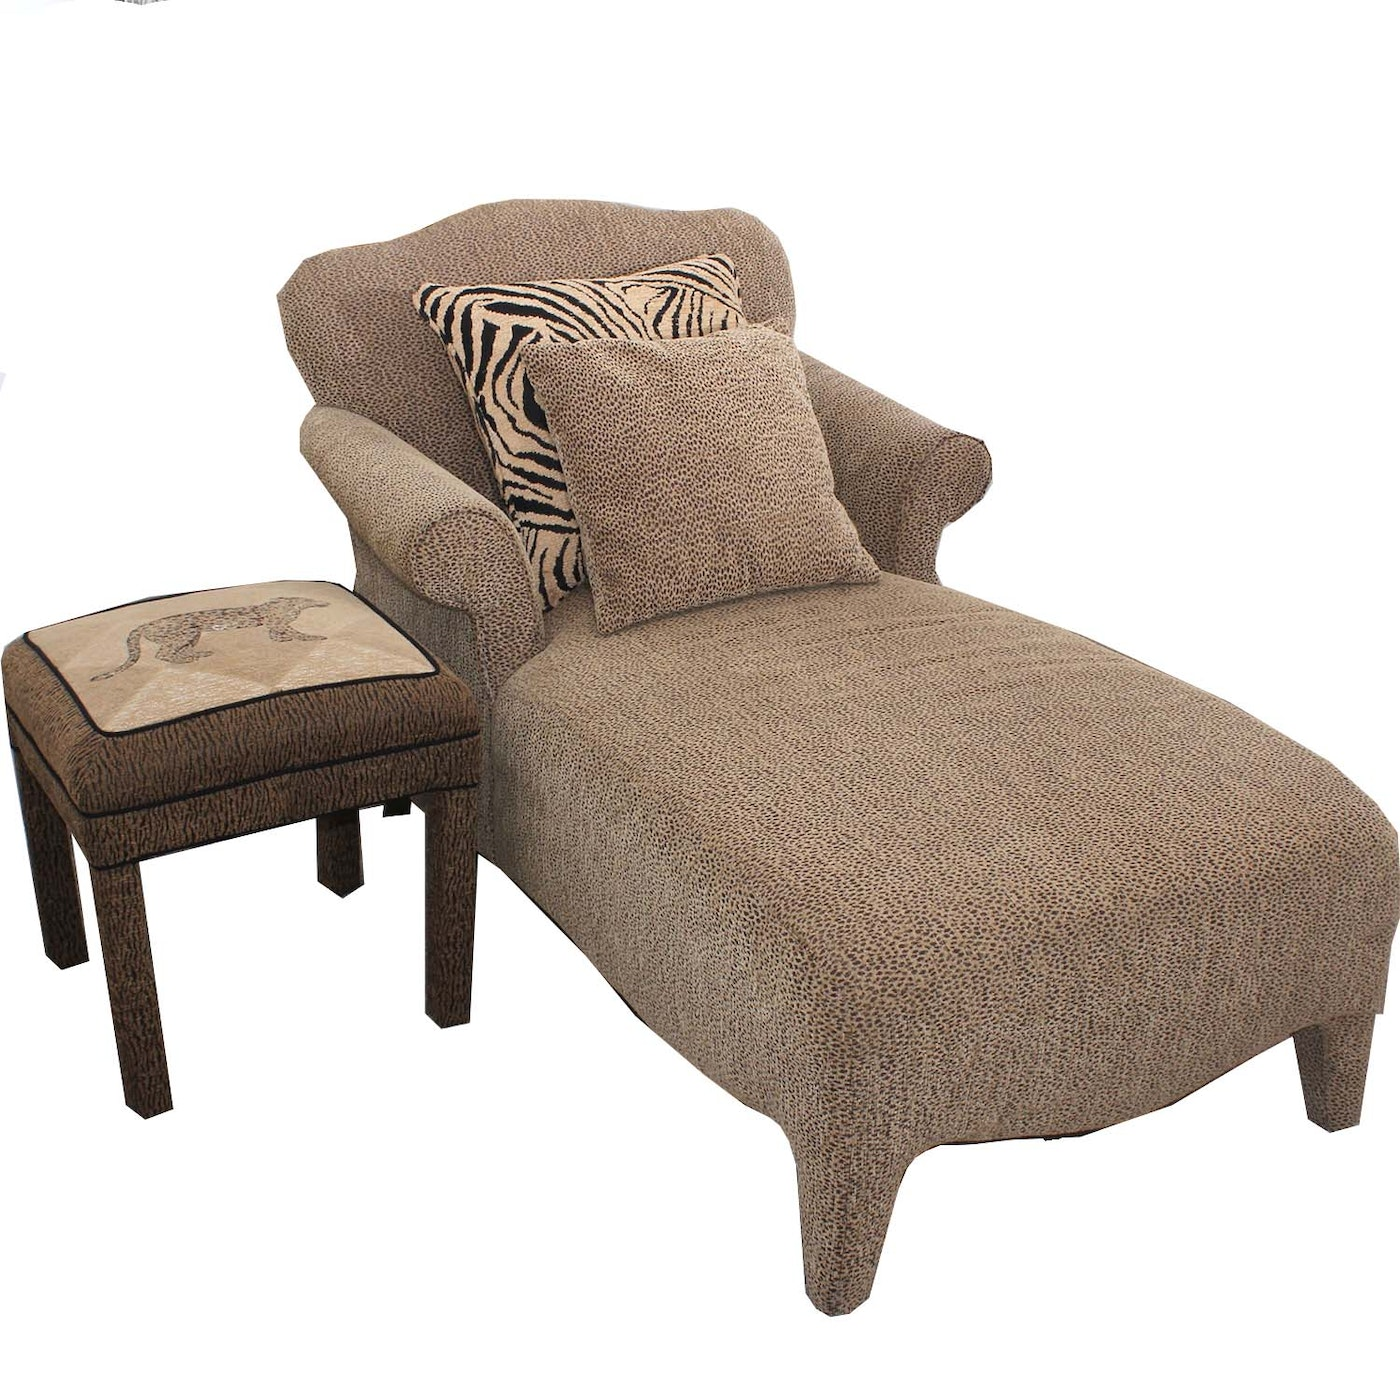 leopard print upholstered chaise and ottoman with accent pillows ebth. Black Bedroom Furniture Sets. Home Design Ideas